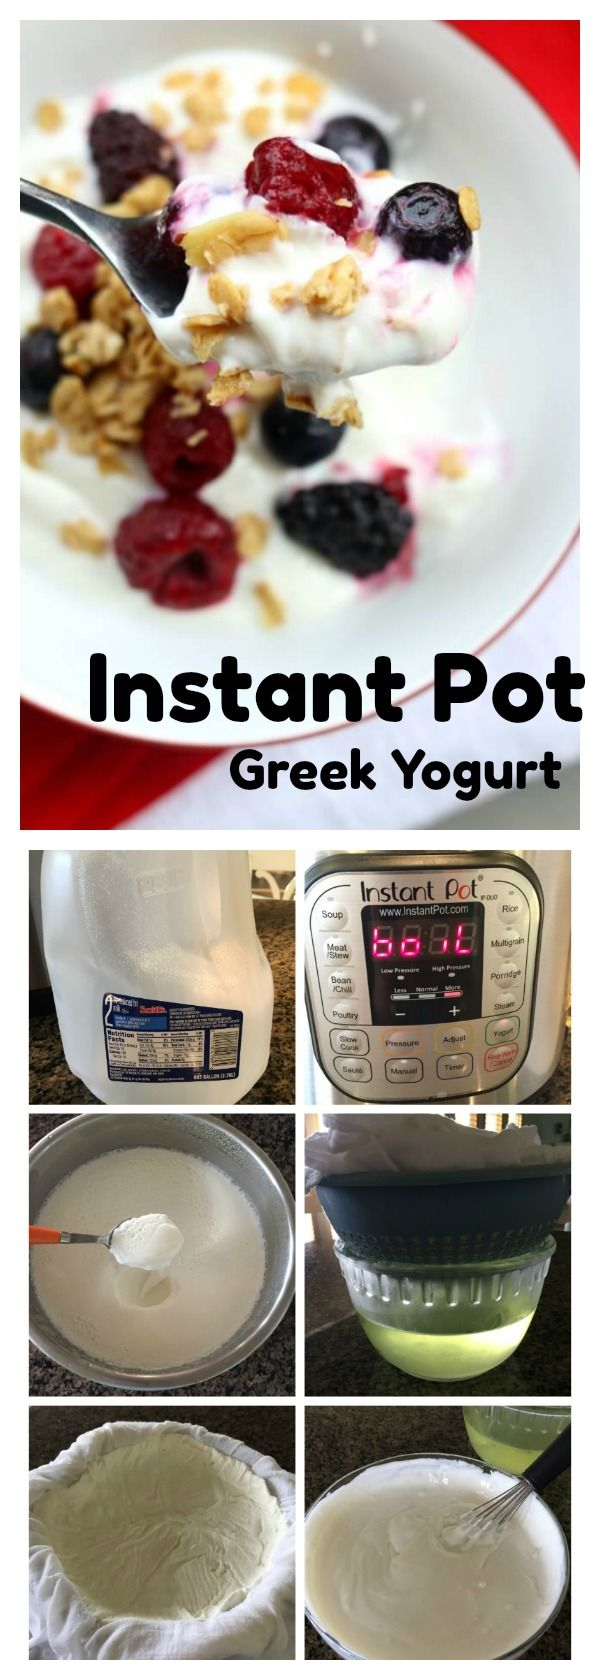 Instant Pot Greek Yogurt–thick and creamy, this yogurt can be made at your own house in your Instant Pot…it's like magic! You only need a gallon of milk and 2 tablespoons of yogurt to make this recipe. #instantpot